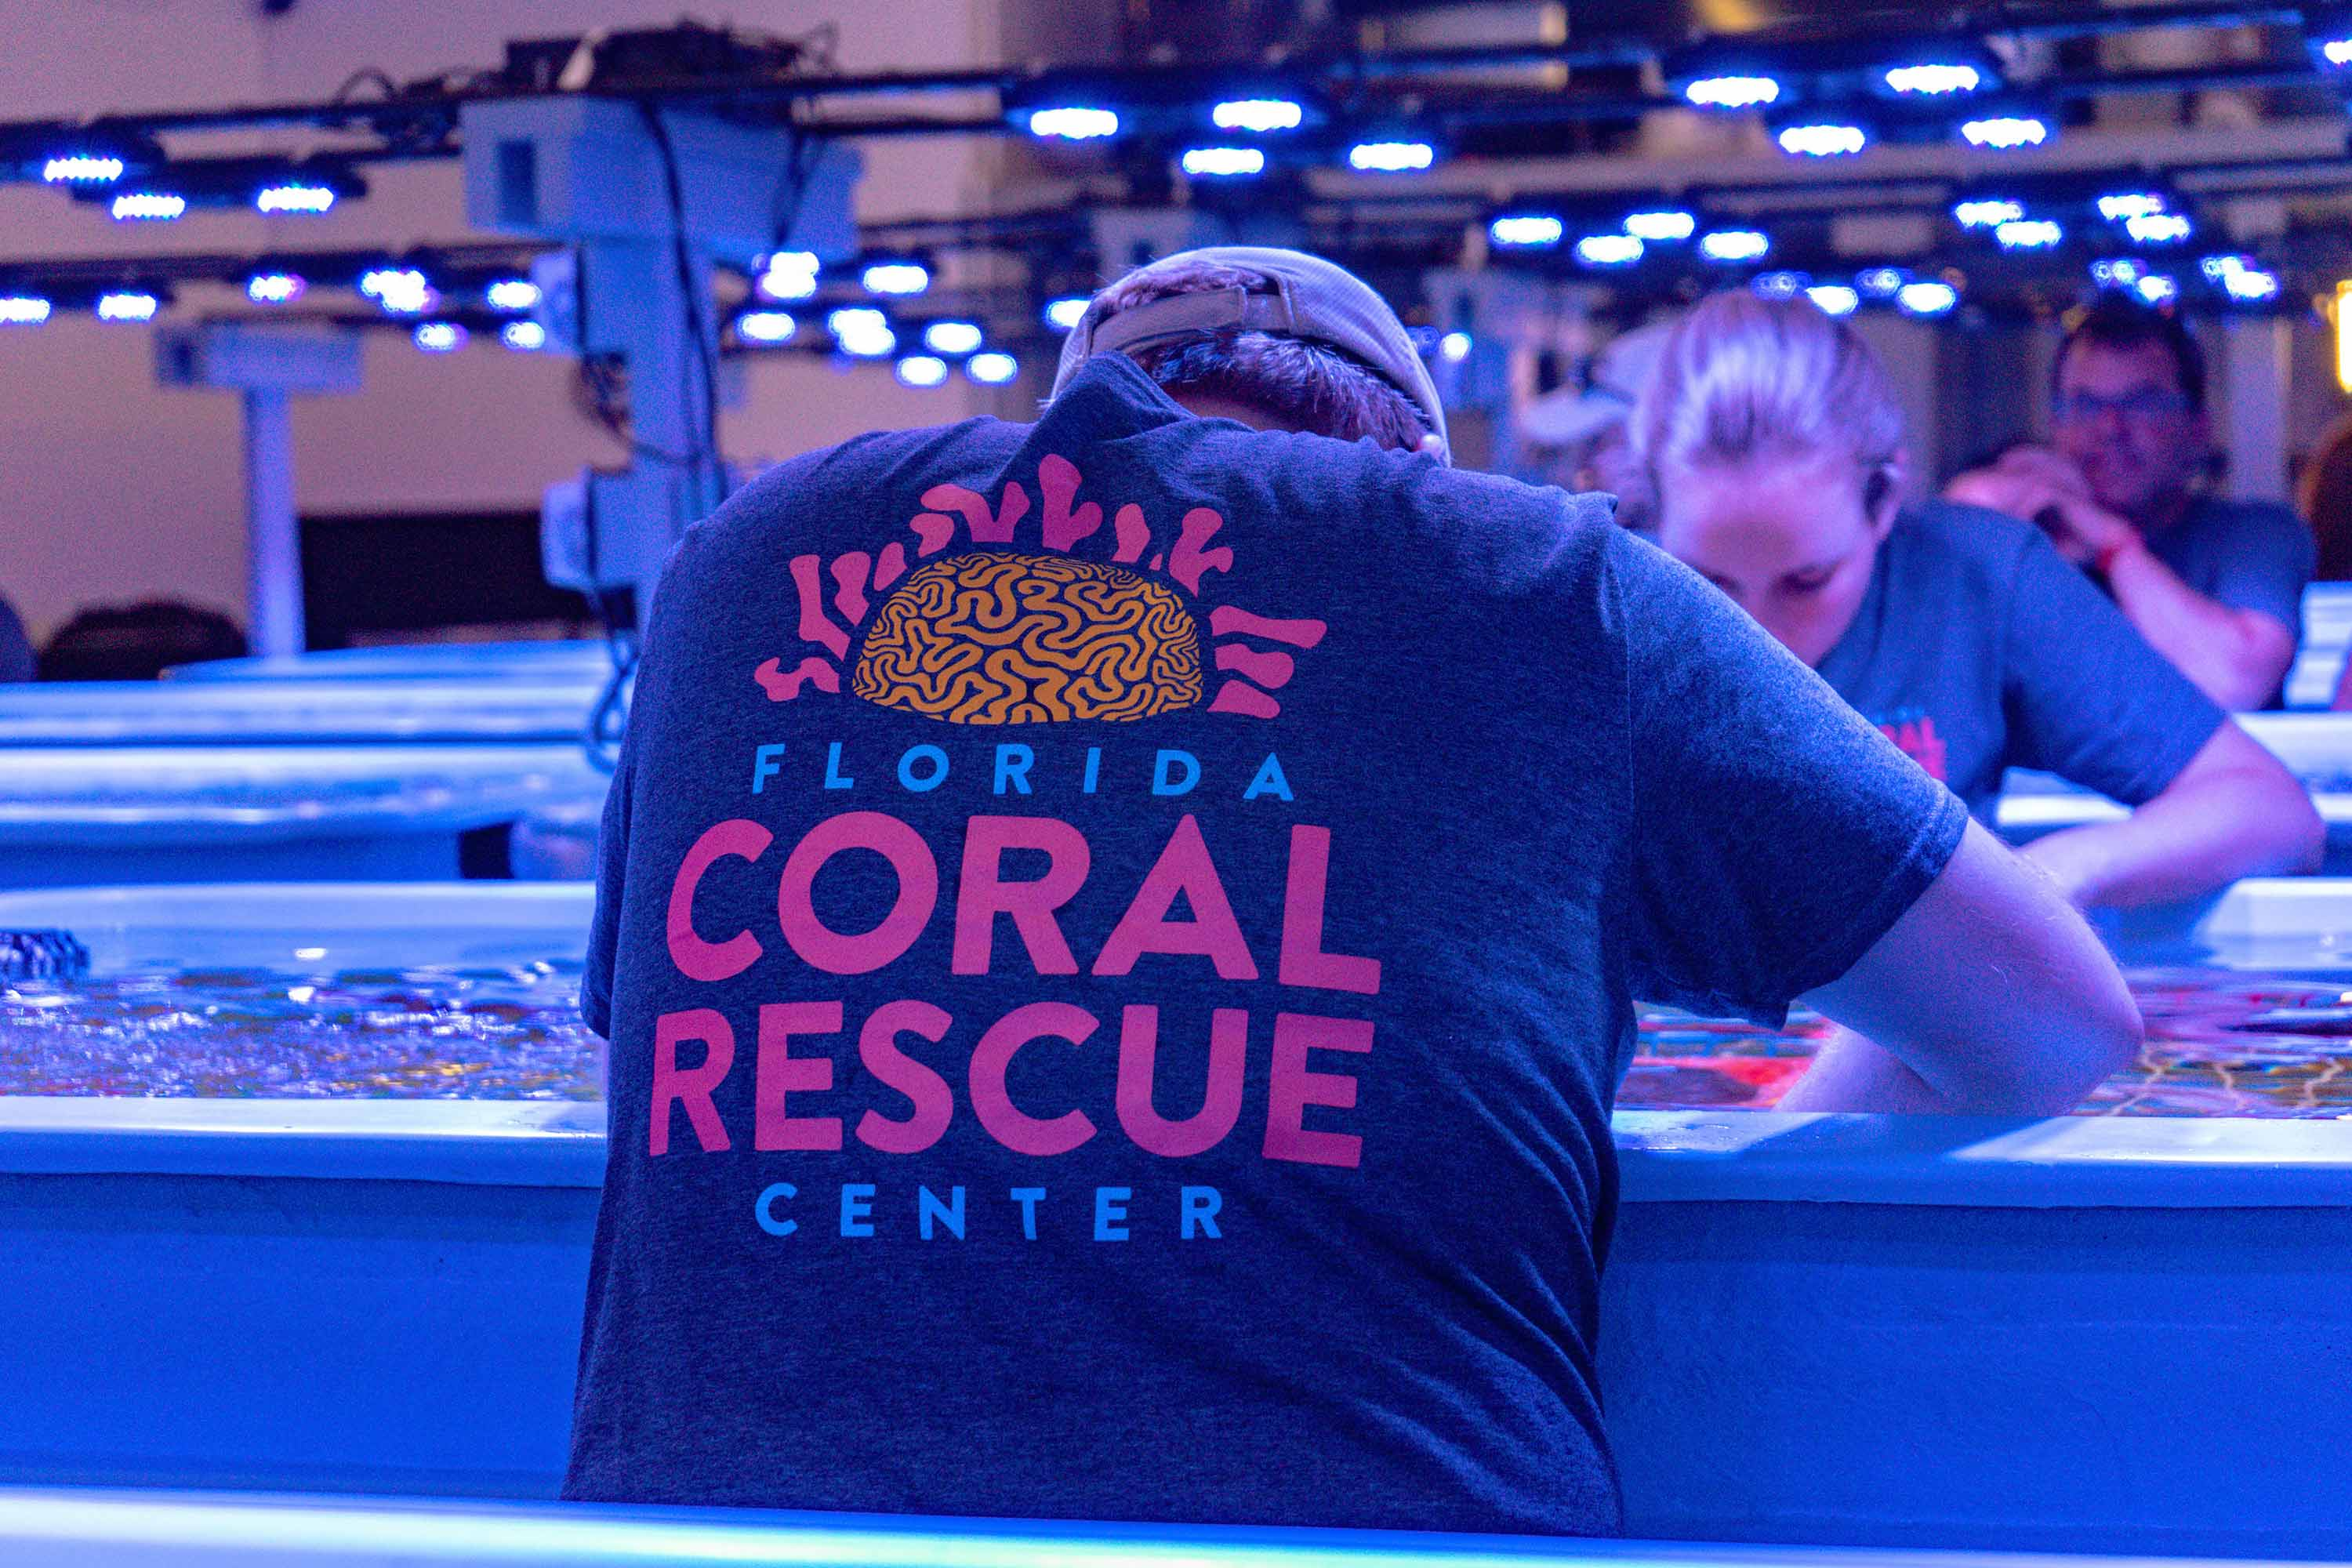 Photo of at staff member working with the coral. Their shirt has the Florida Coral Rescue Center logo